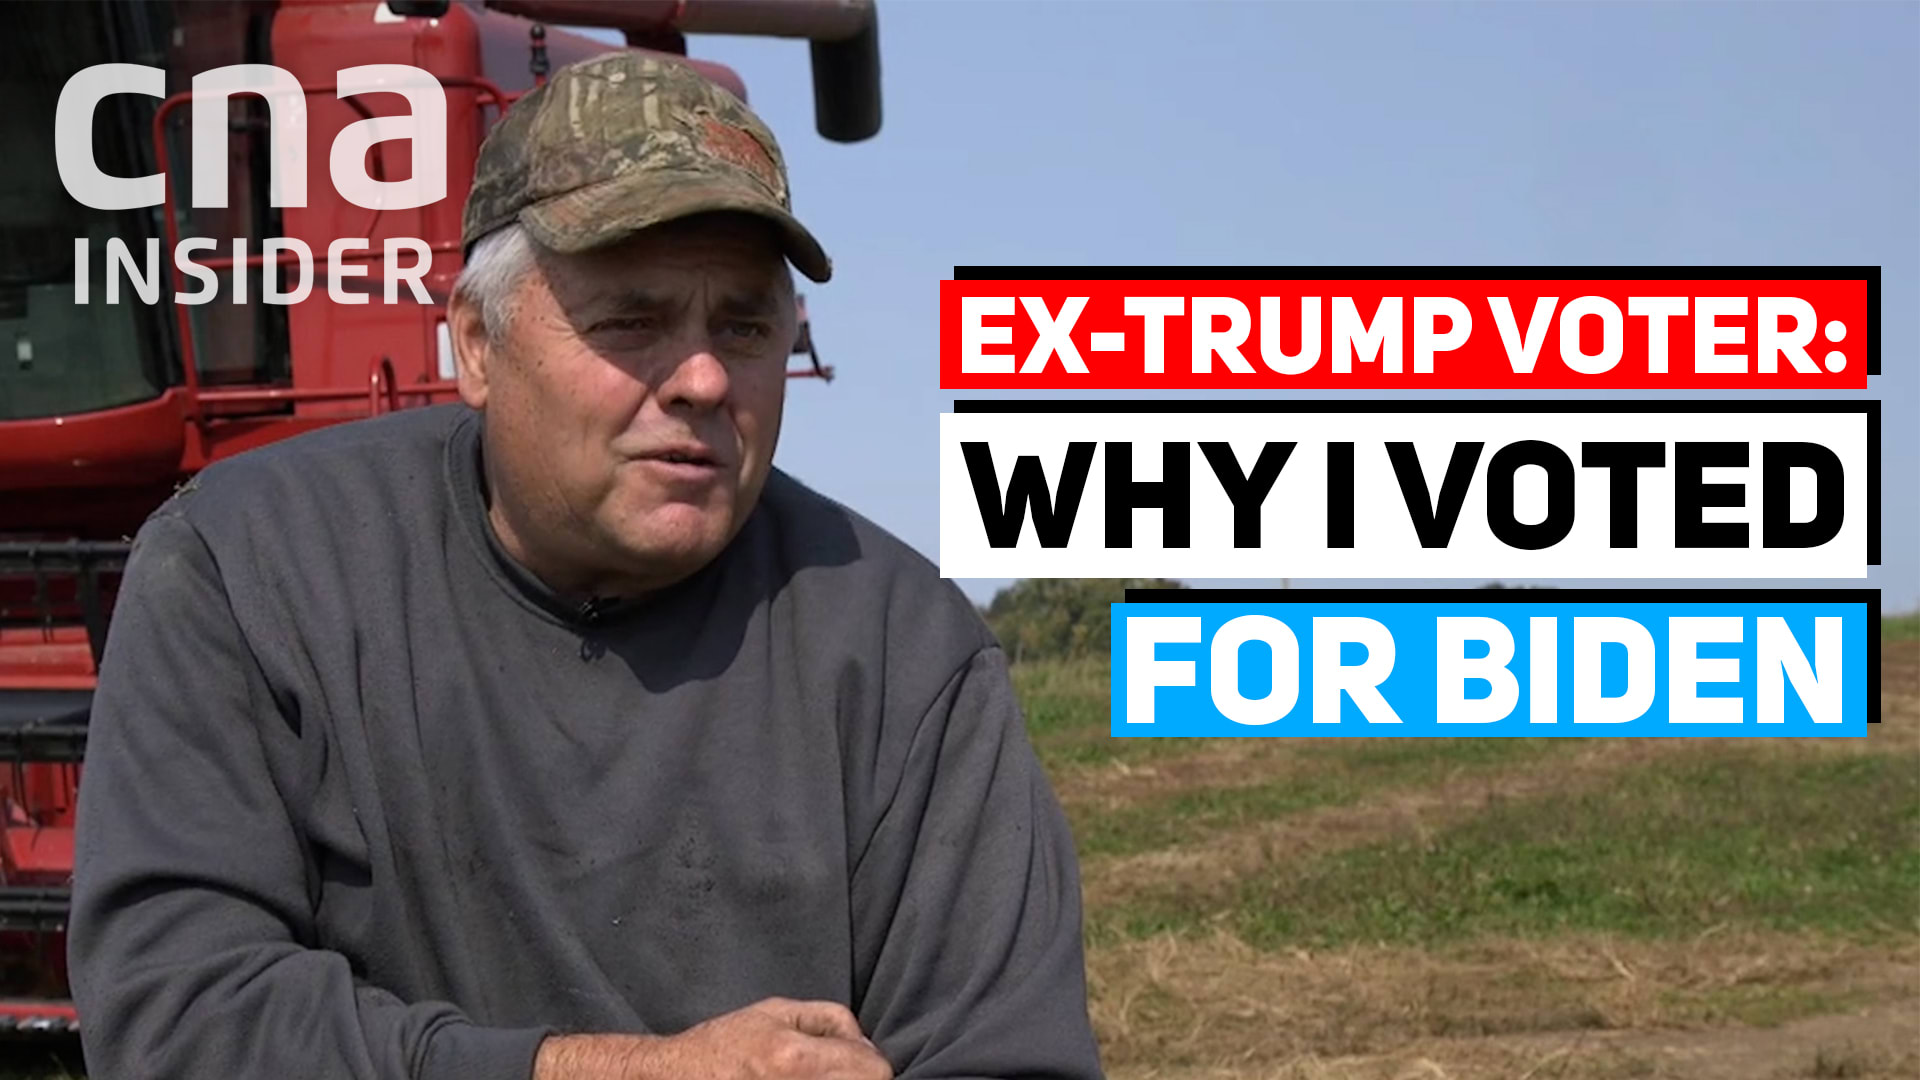 Pennsylvania 2020 election: Why this ex-Trump voter backs Biden